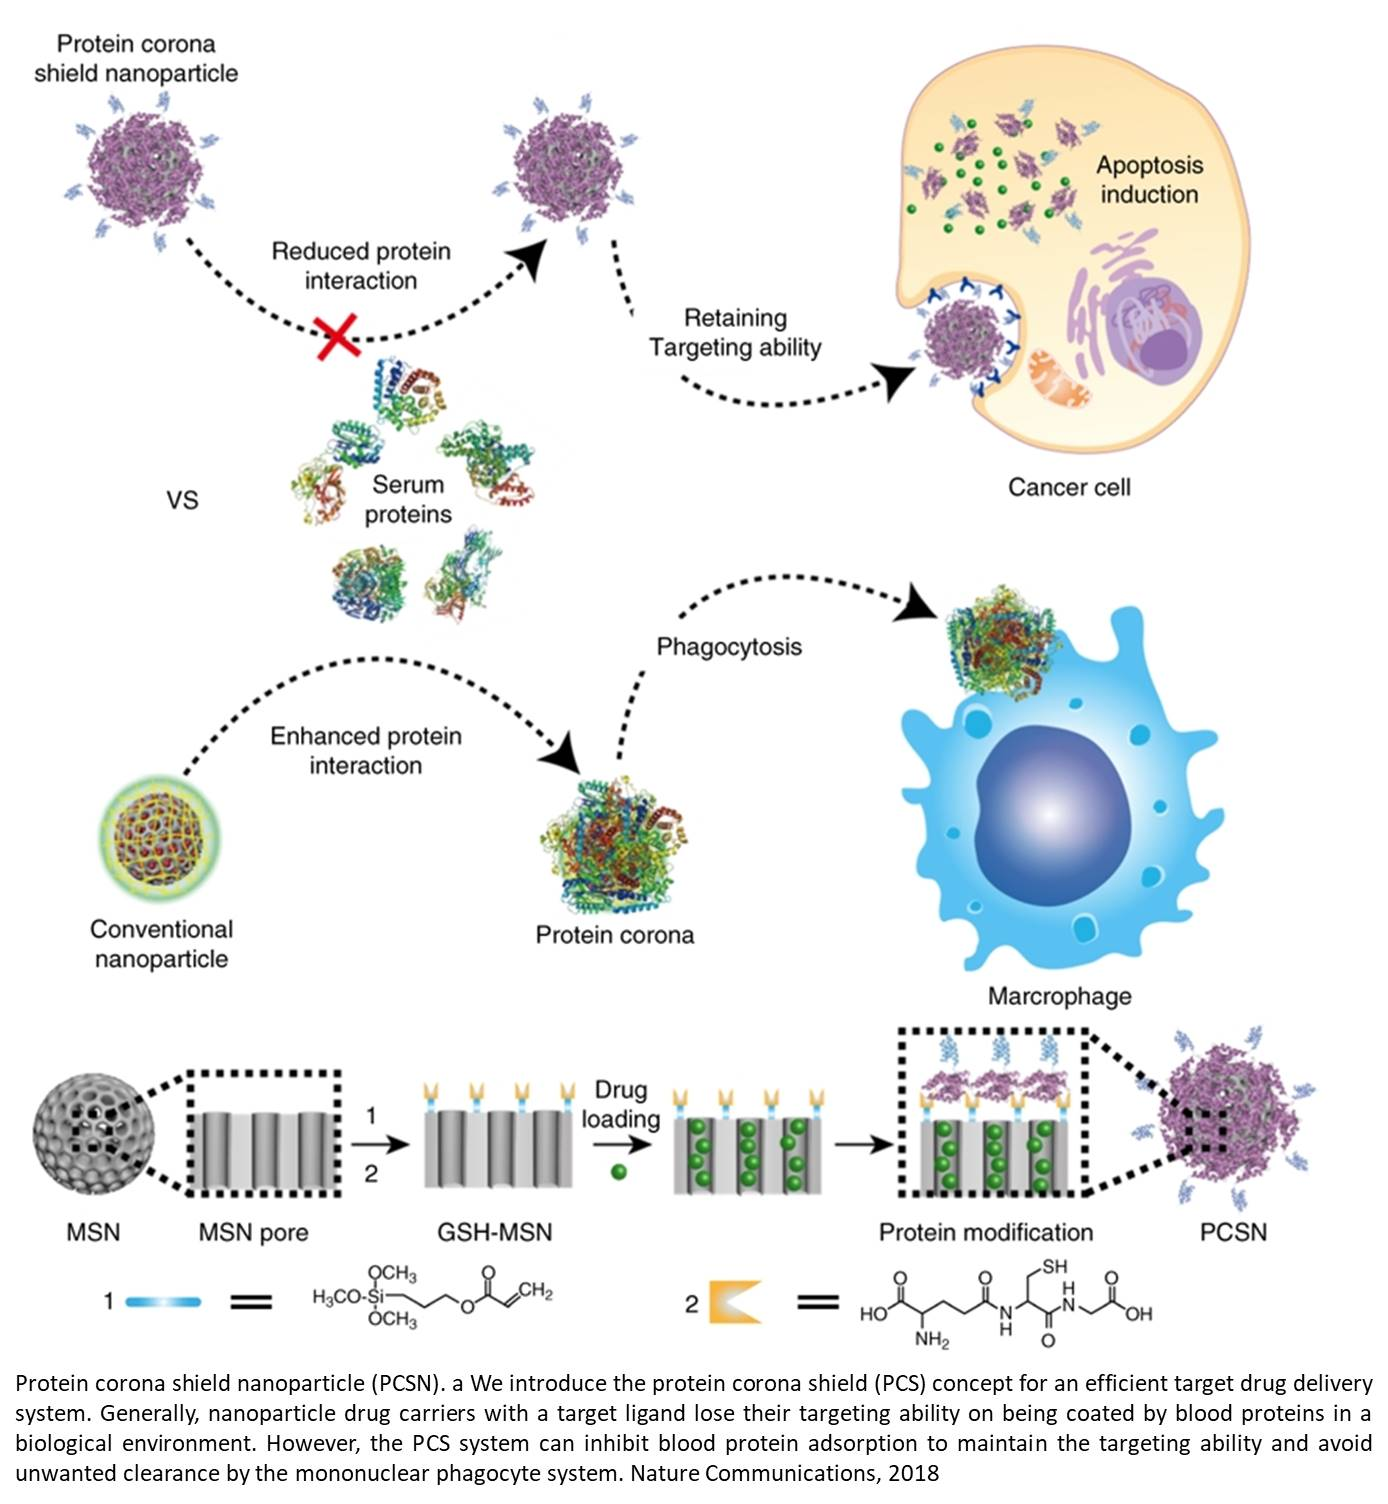 Protein corona shield (PCS) concept for an efficient target drug delivery system